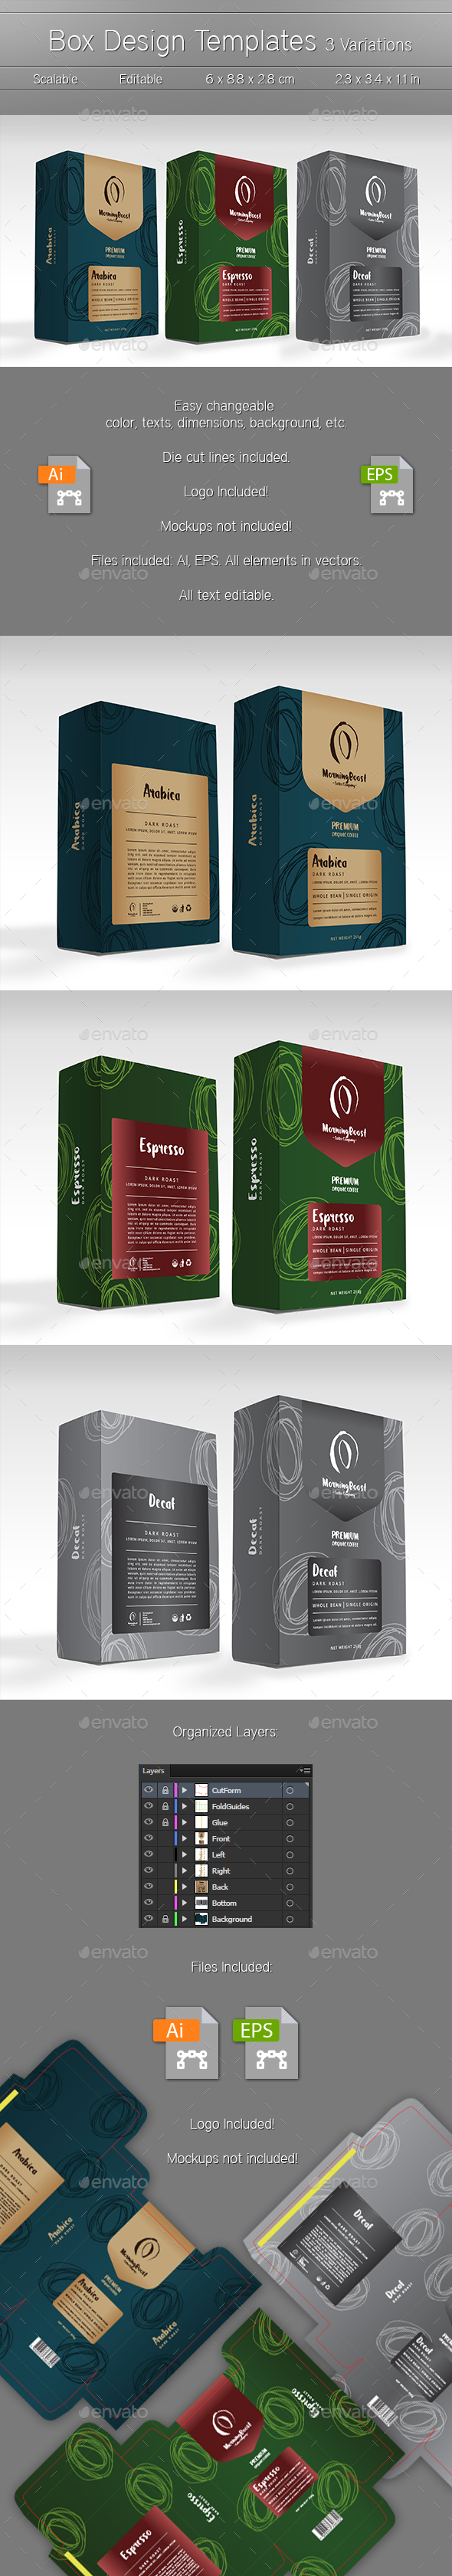 3 Box Package Design Templates - Packaging Print Templates